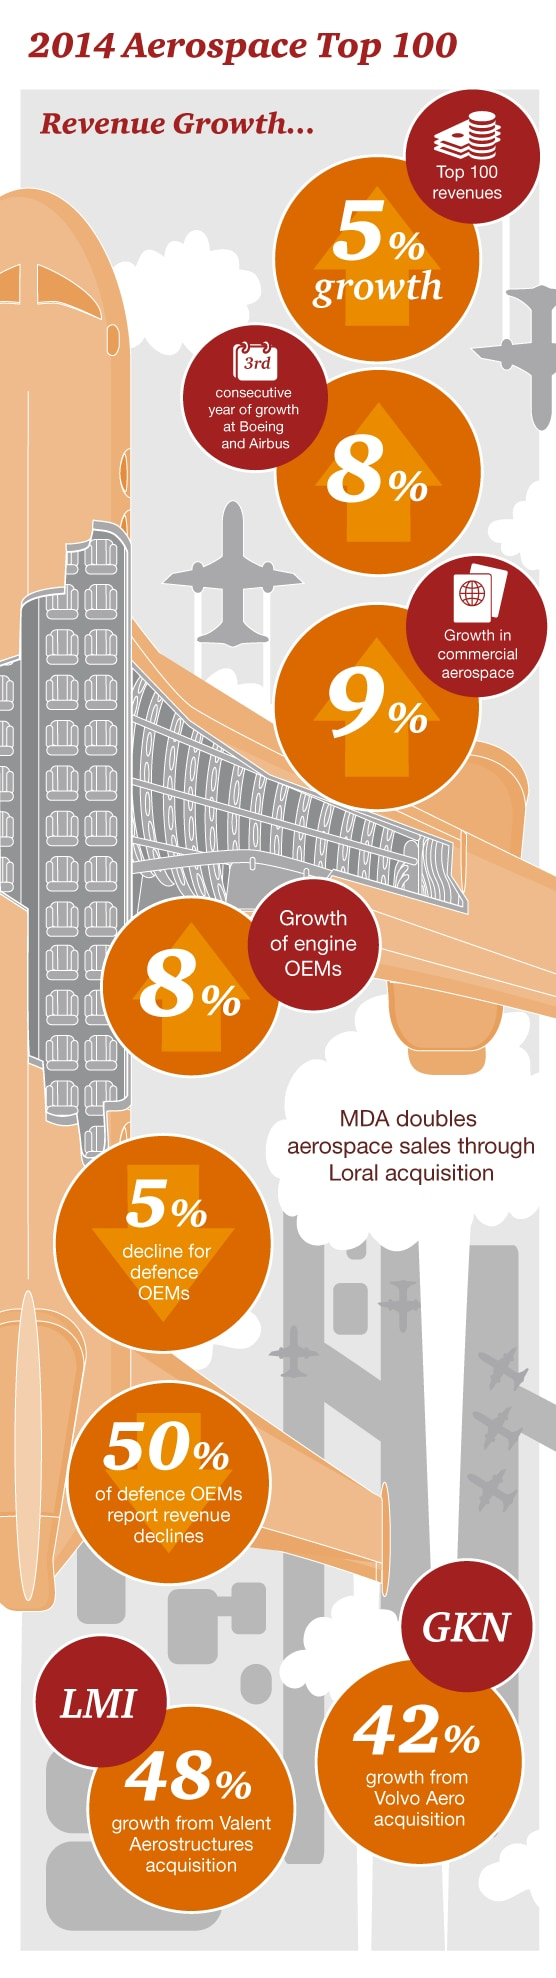 2014 Top 100 Aerospace Companies Revenue Growth